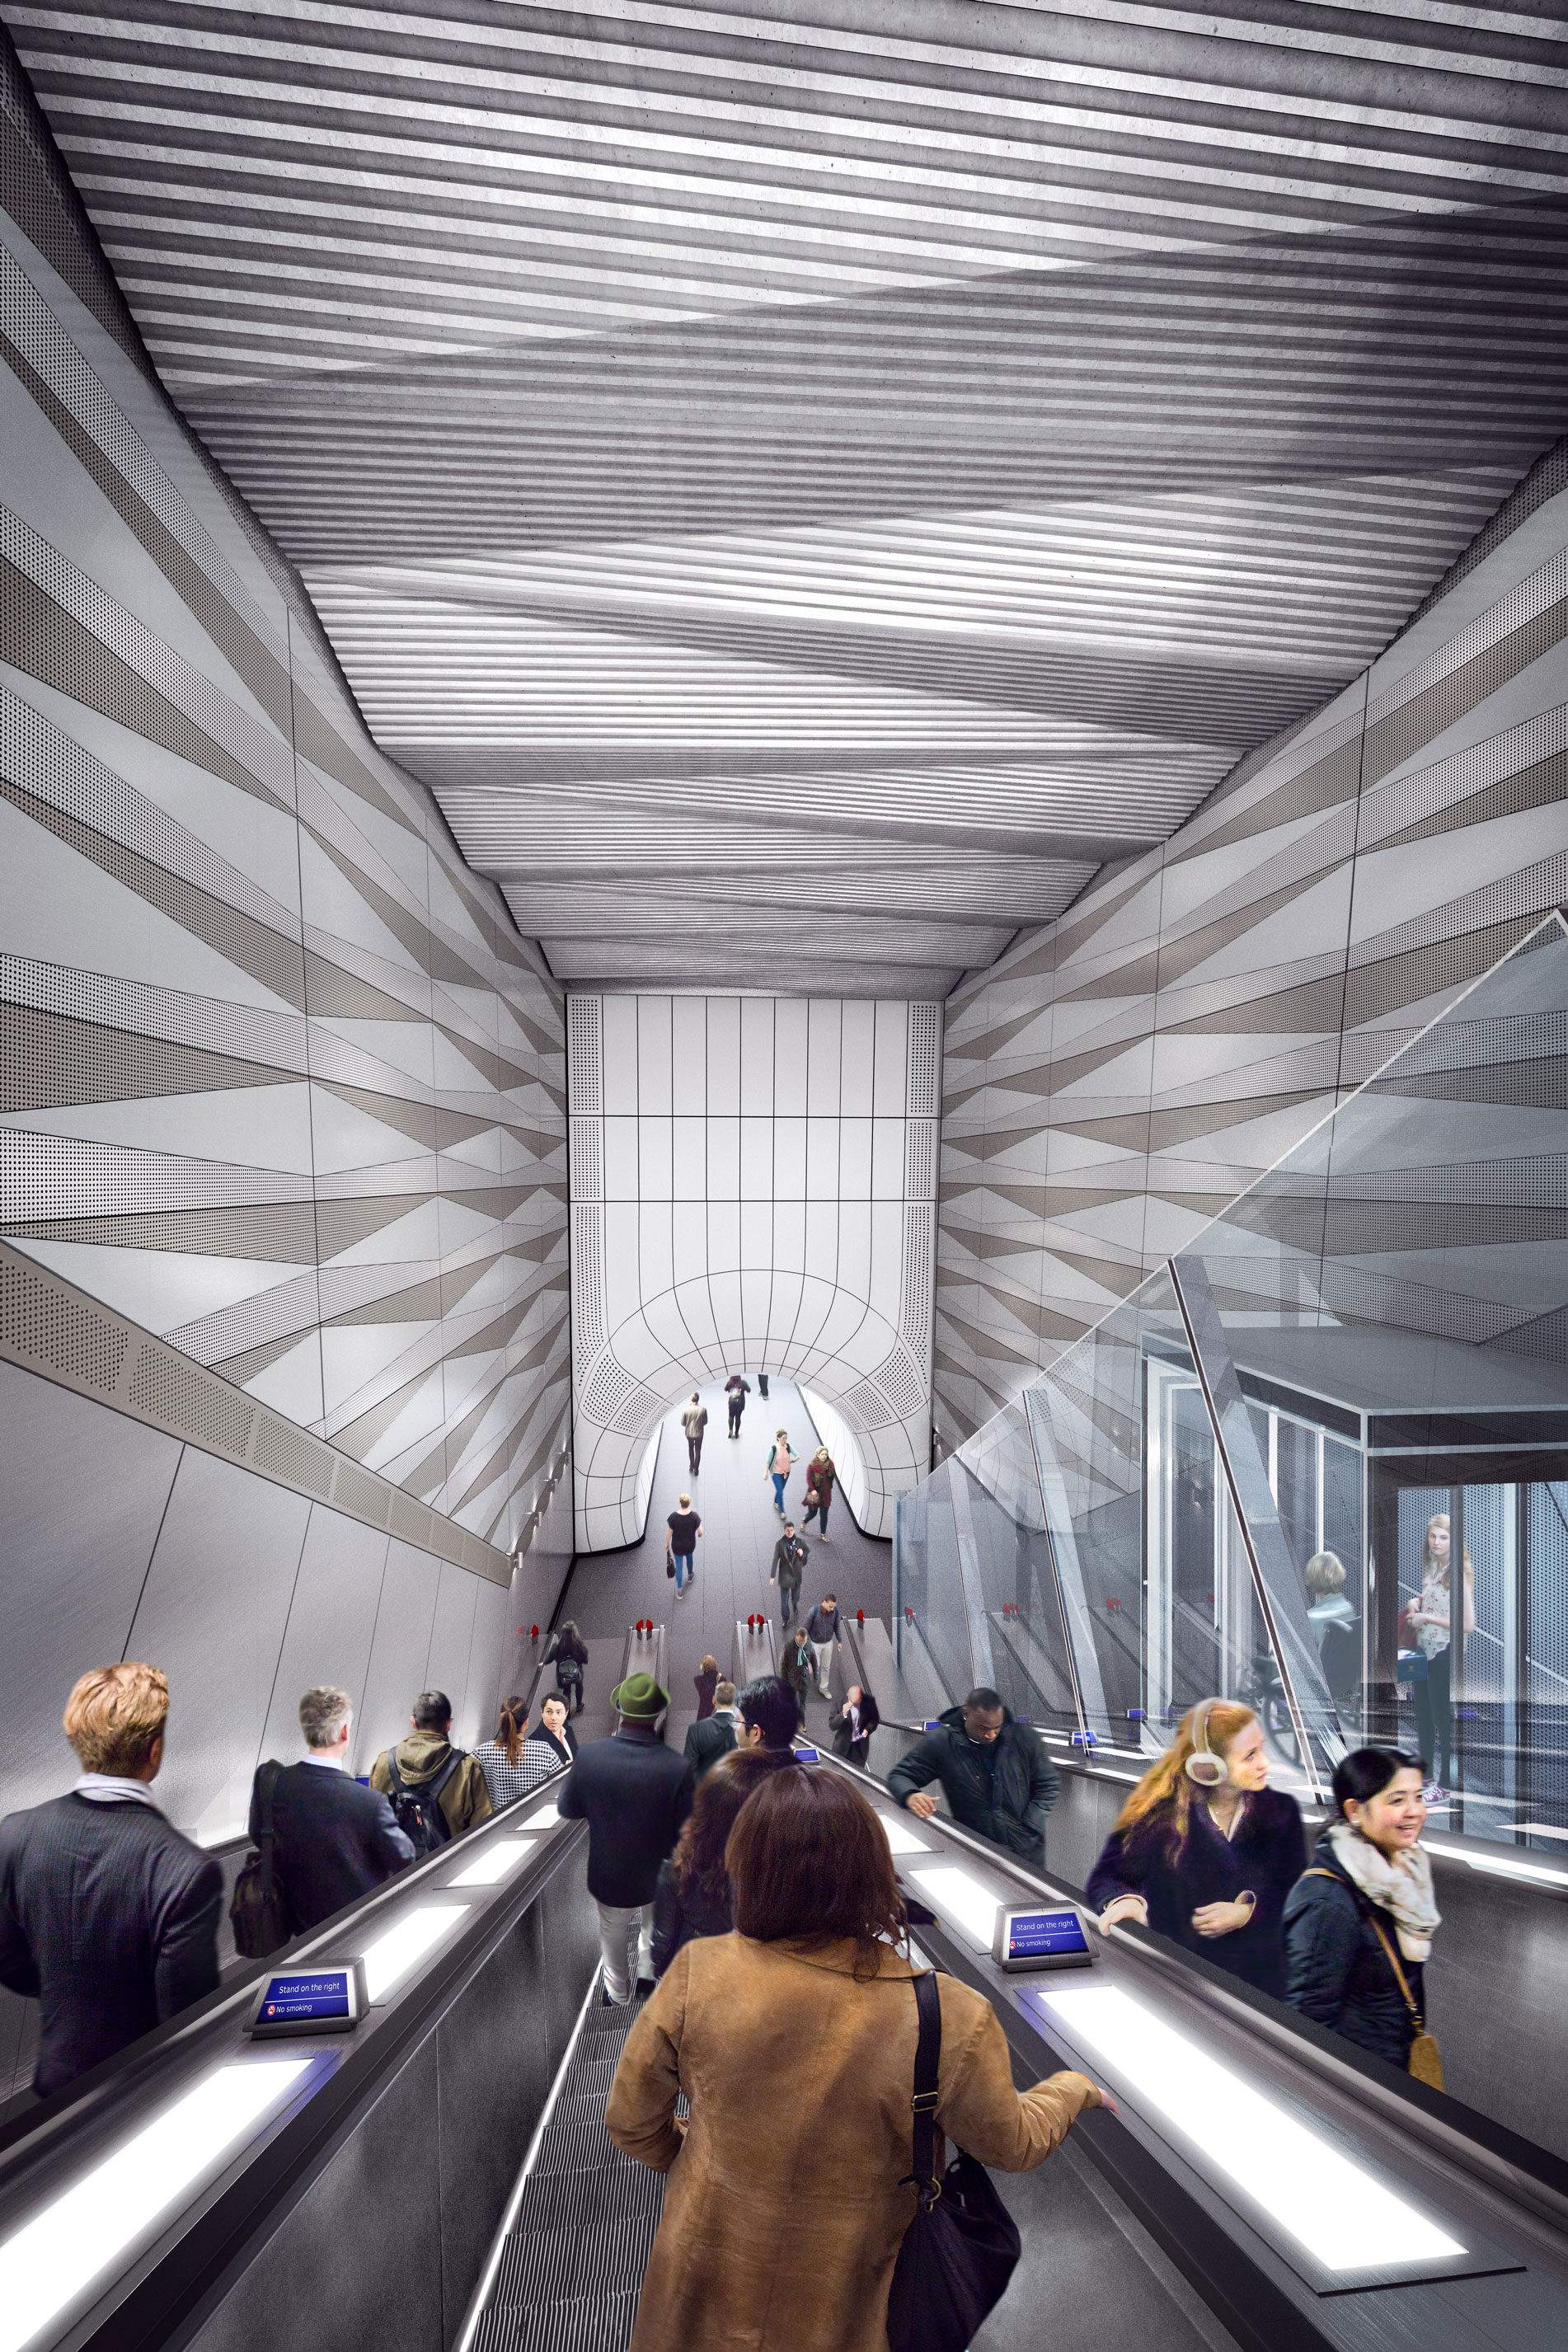 HB1501_Crossrail_LIV_View04_05_web